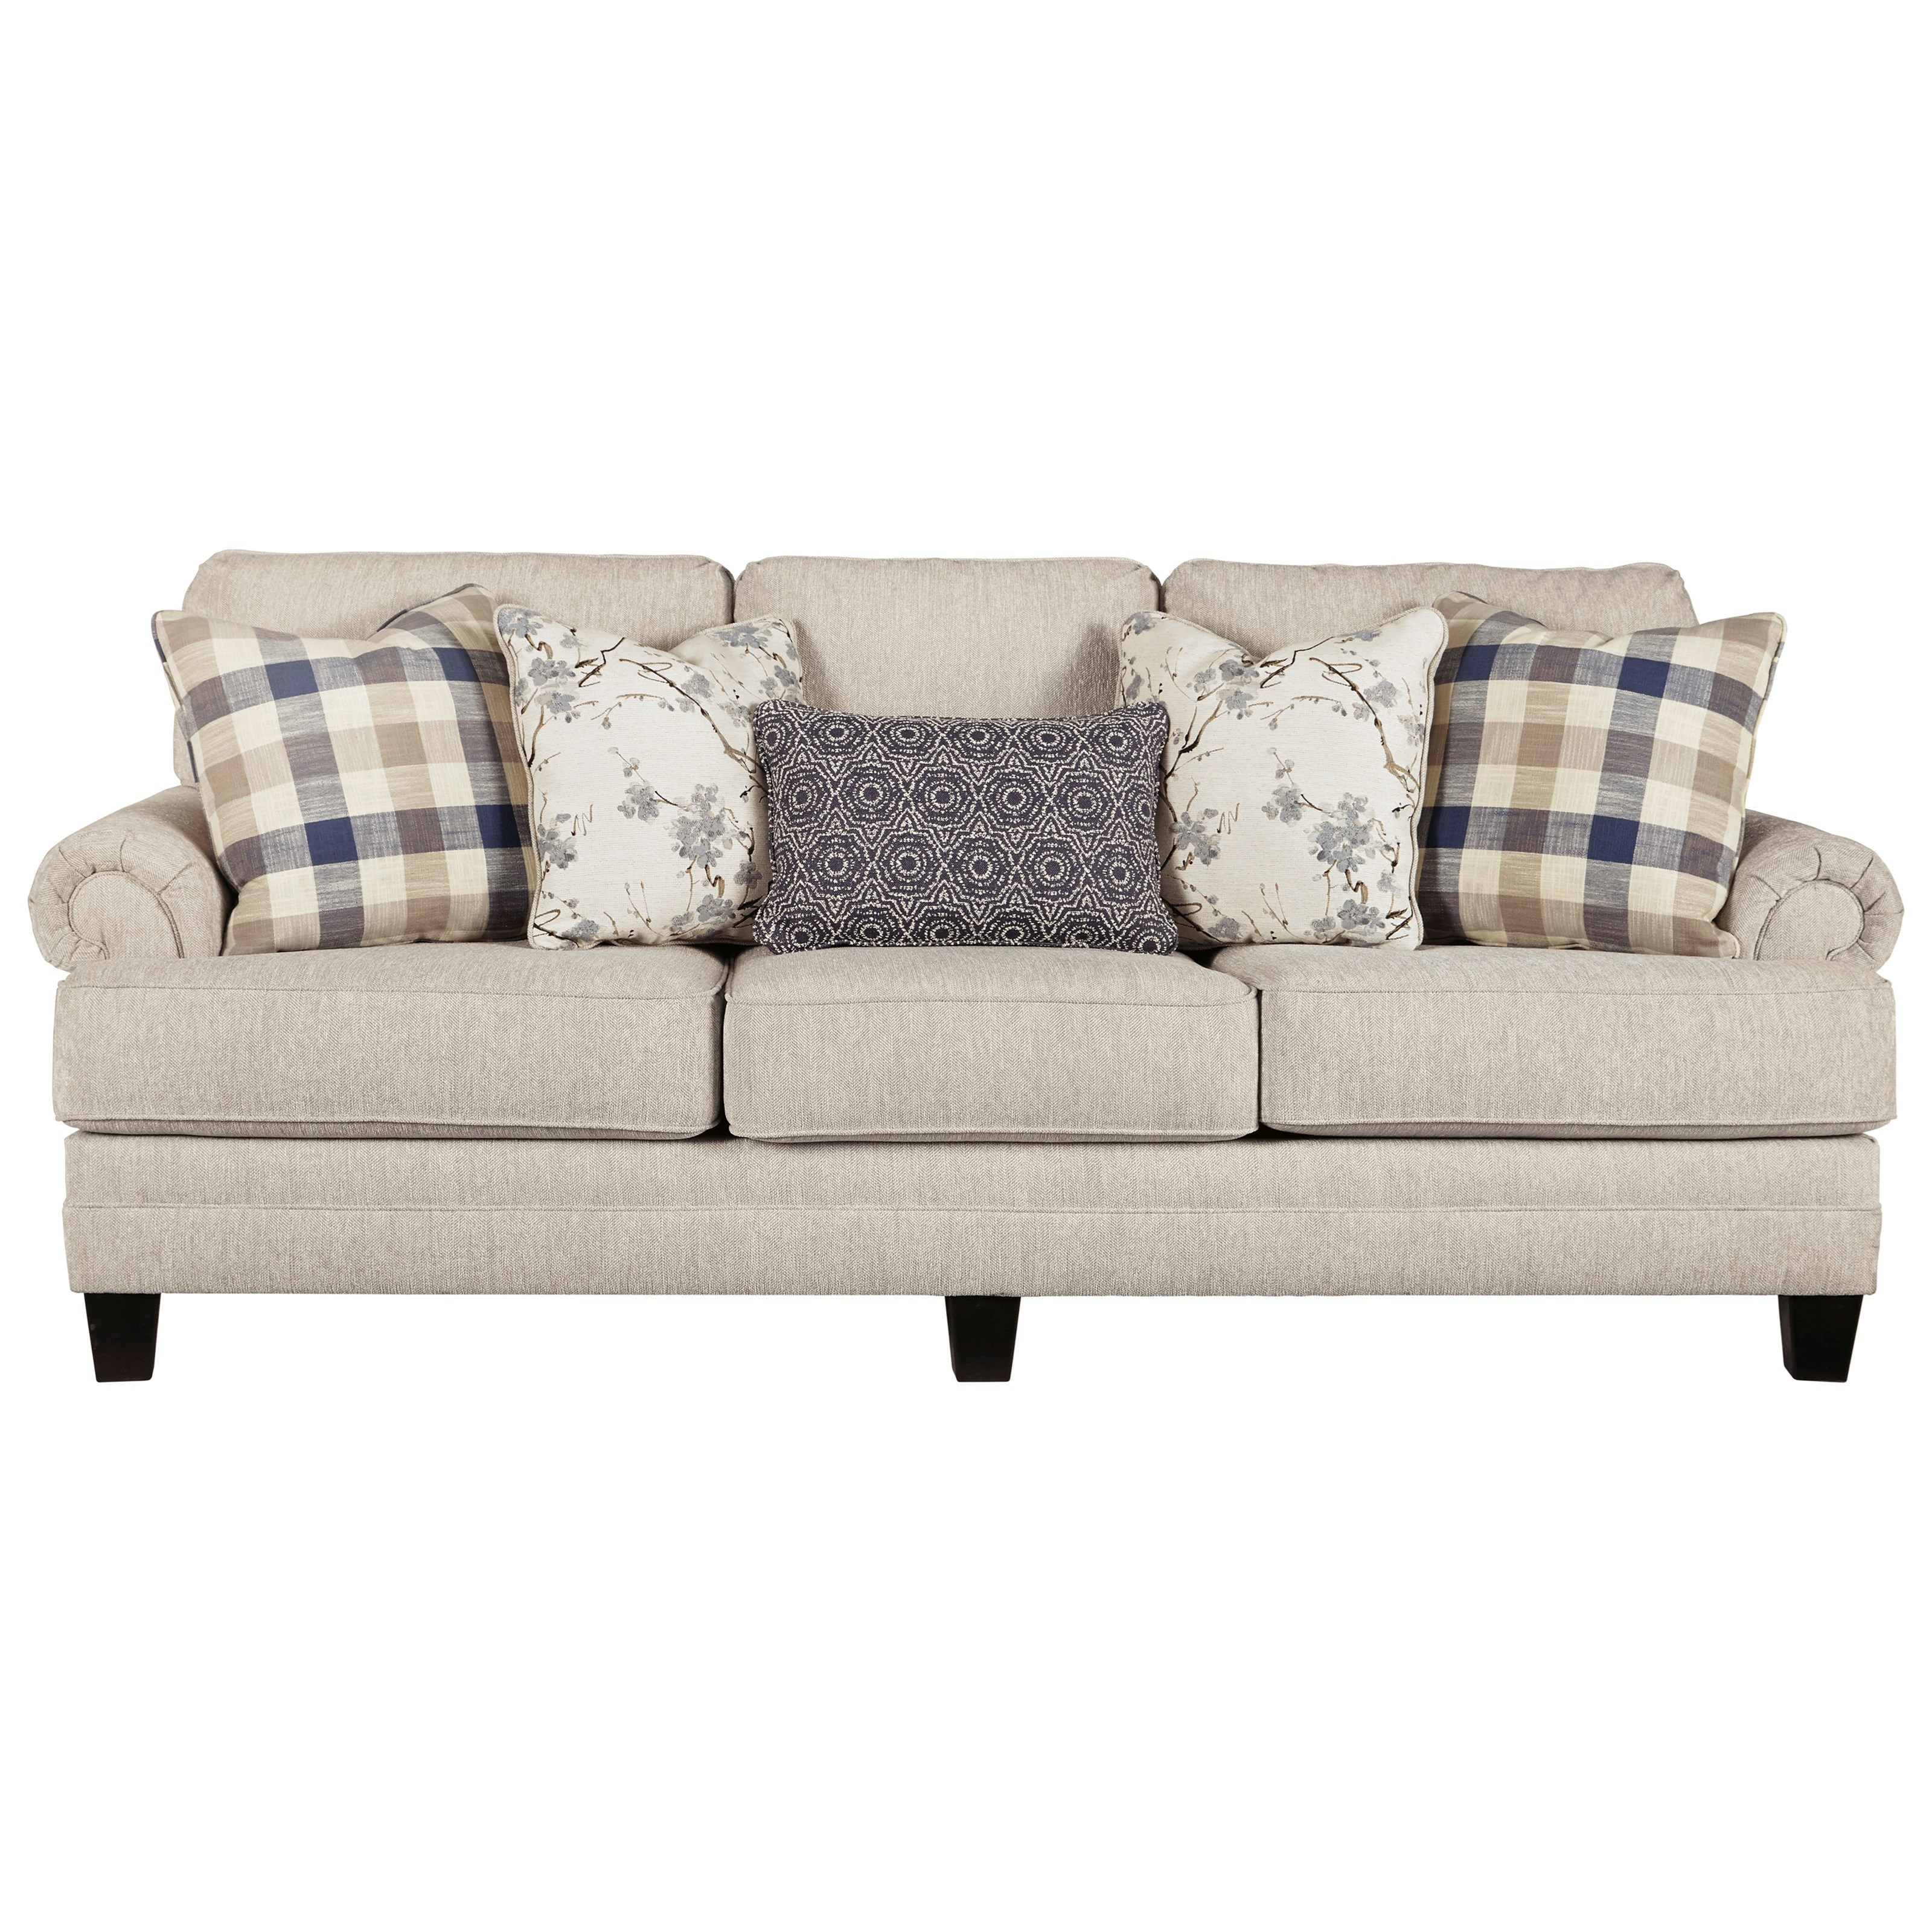 BETSY Sofa by JB King at EFO Furniture Outlet